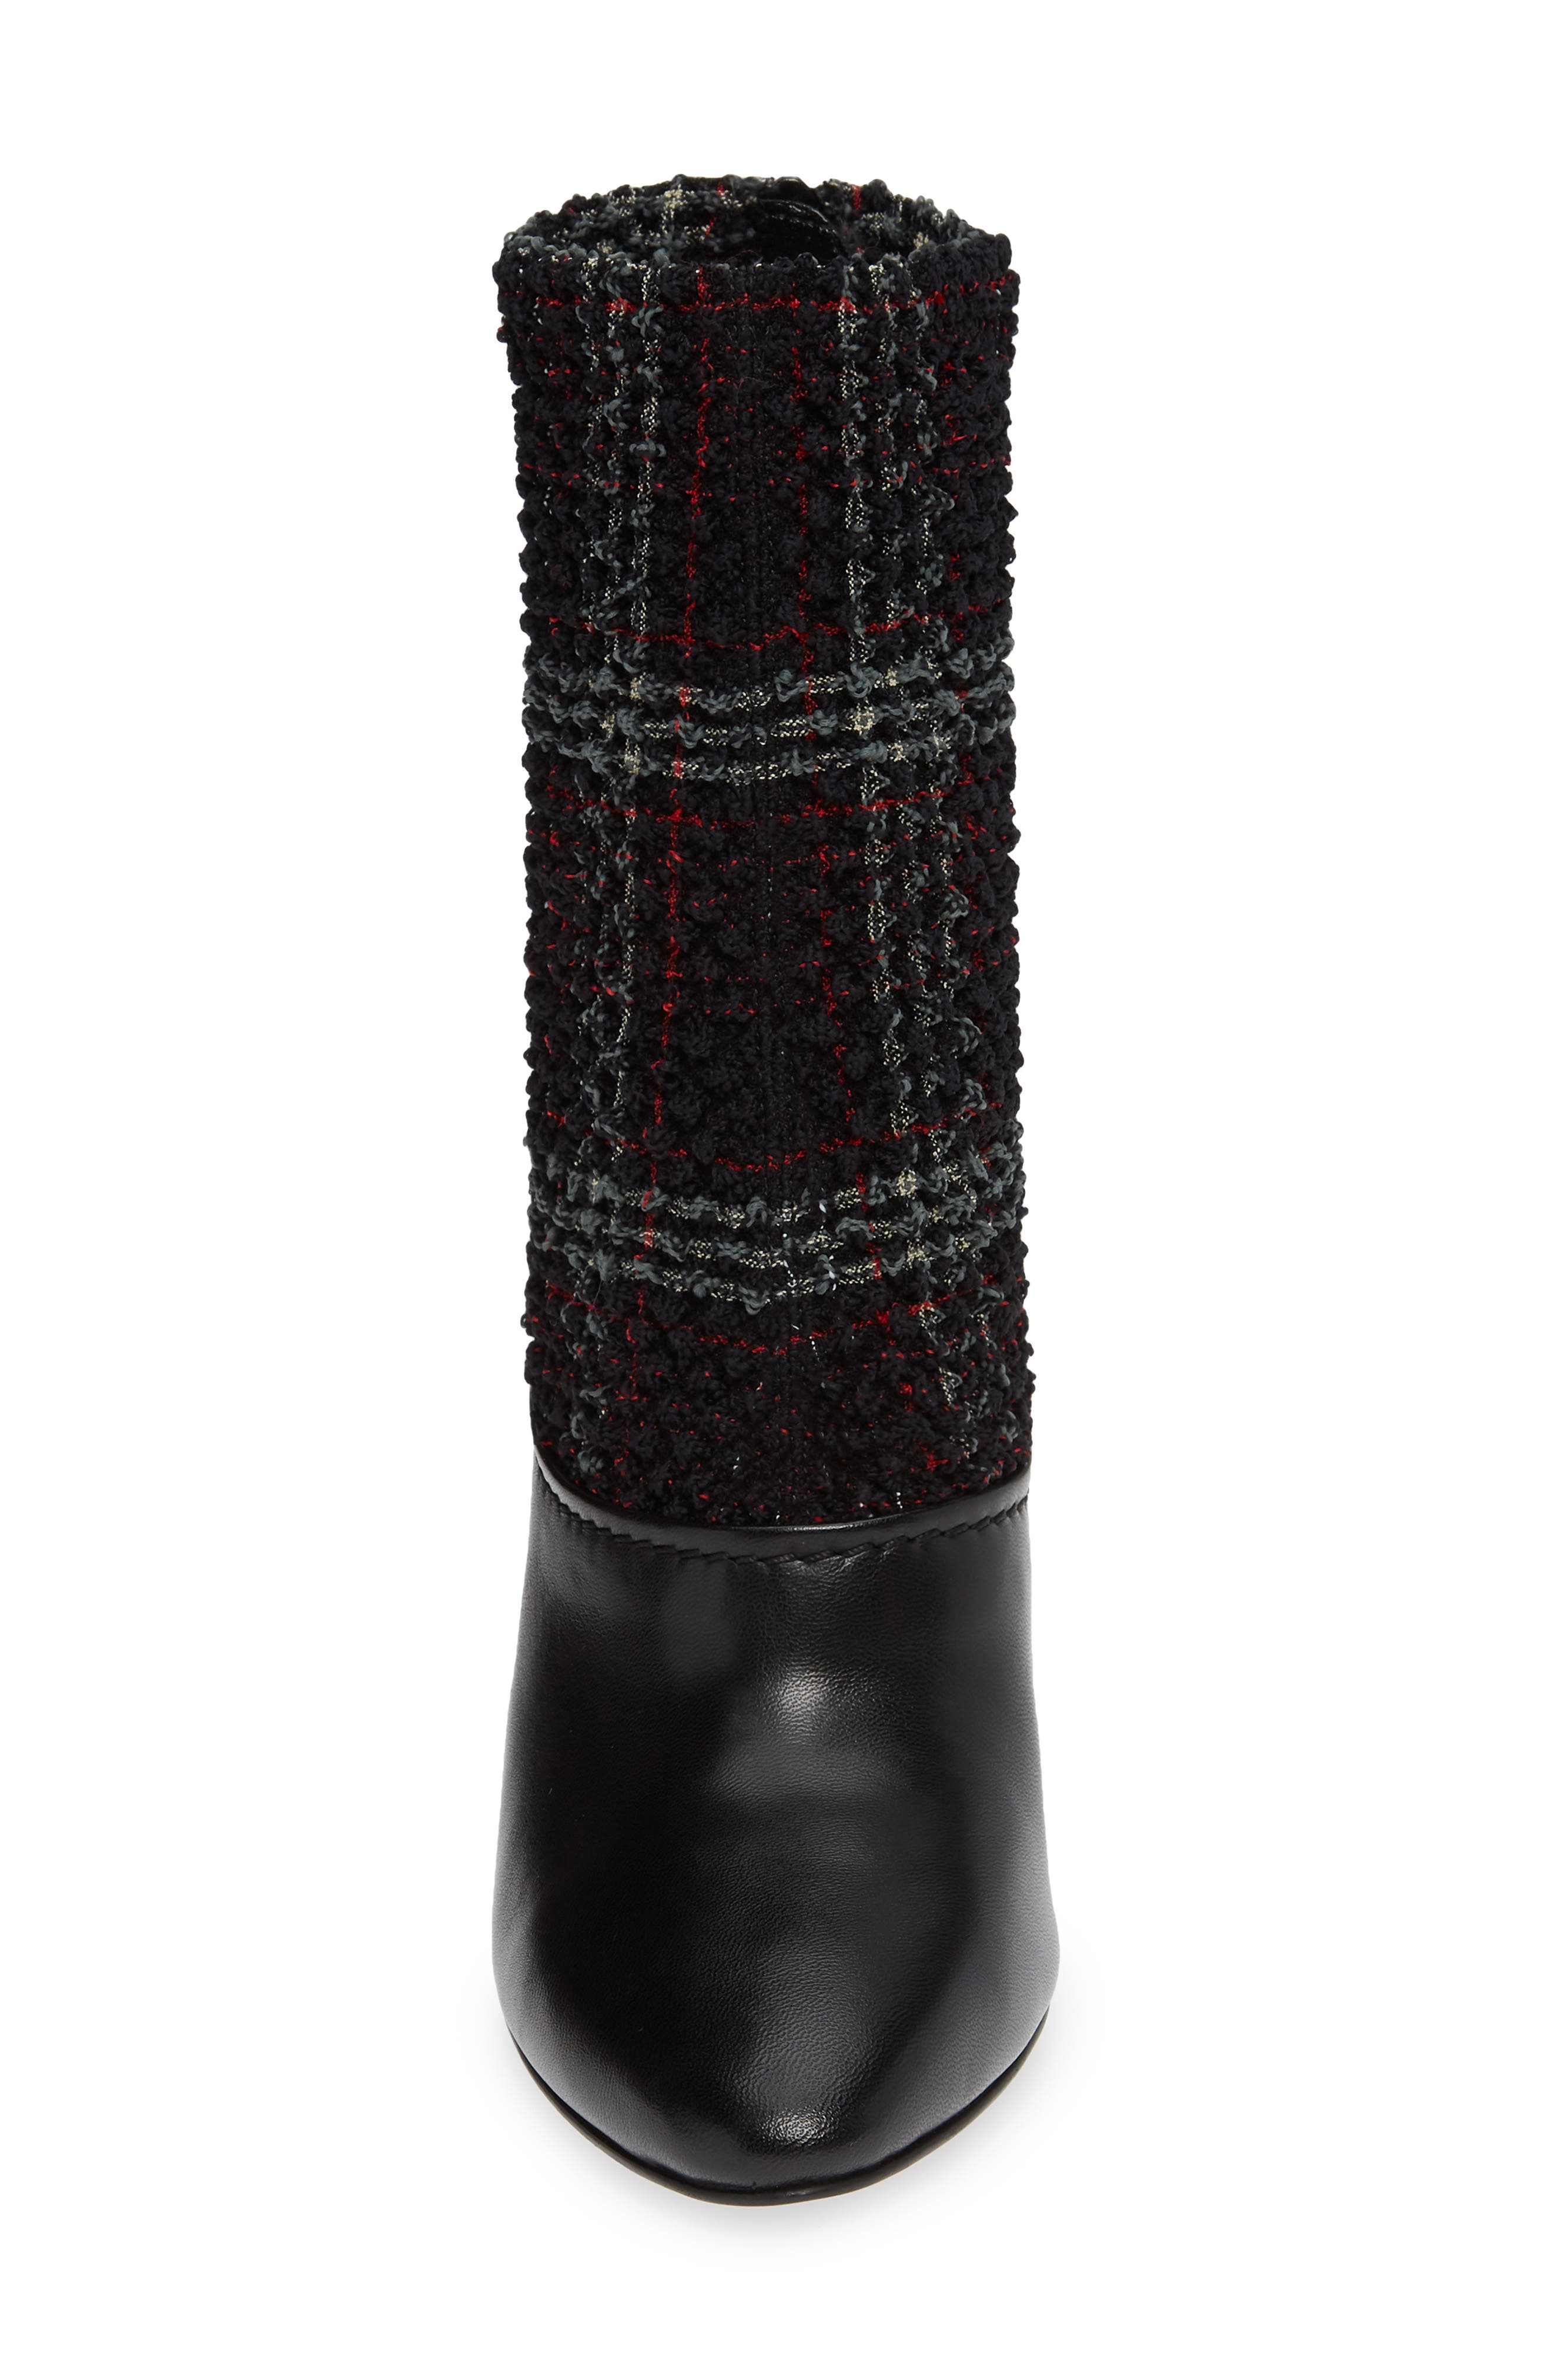 Kyoto Leather Bootie,                             Alternate thumbnail 4, color,                             BLACK/ GREEN/ RED CHECK